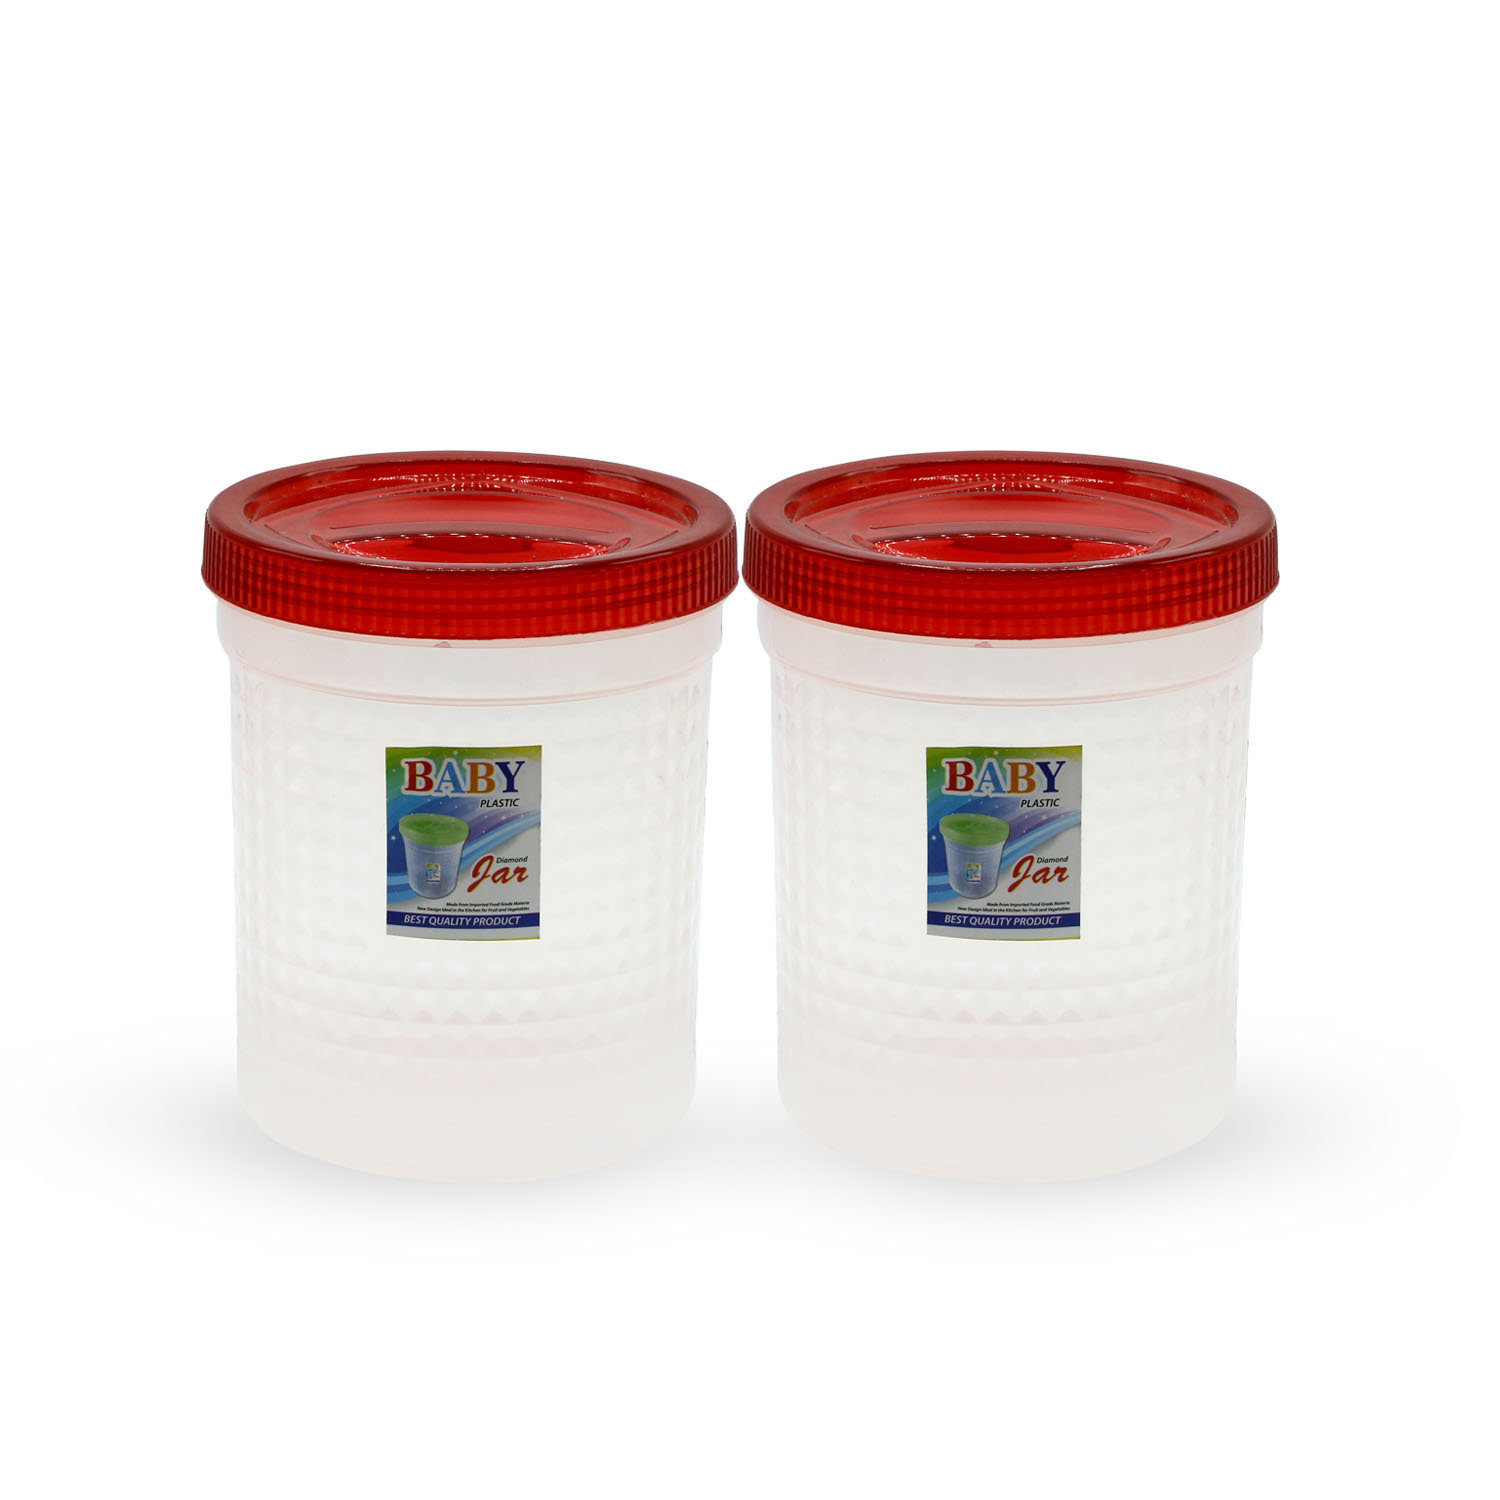 Novel Plastic Jar Set 2pcs Red